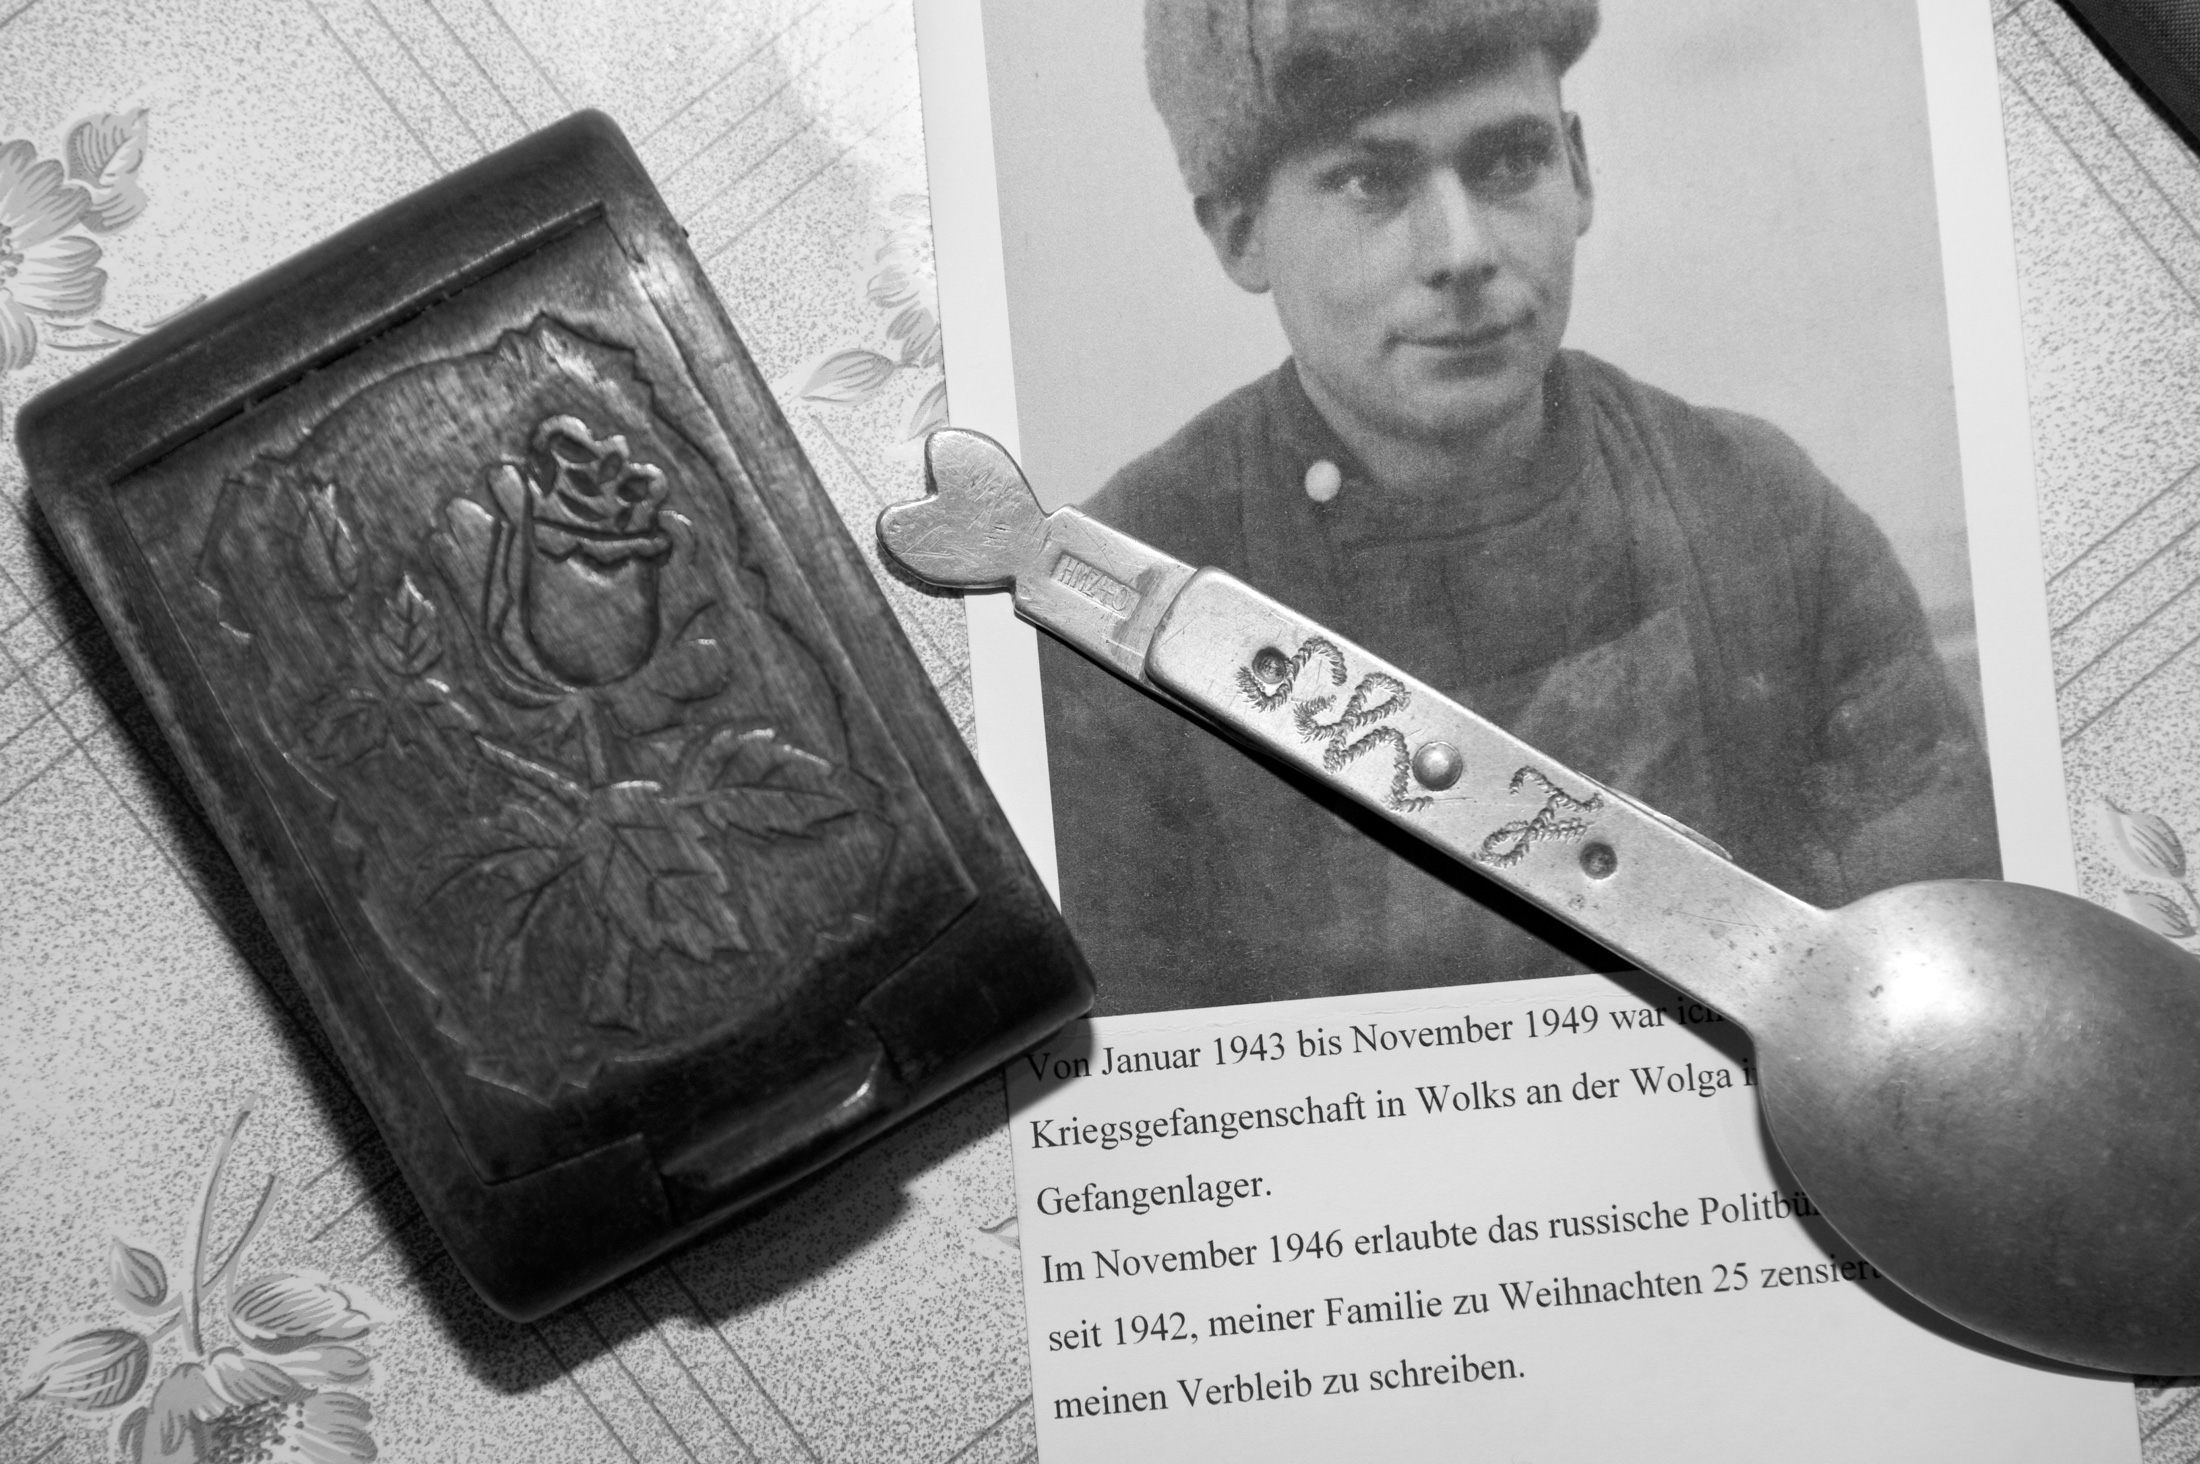 Photograph showing Scheins as a POW, along with a tin spoon bearing his initials and a wood carving he made in Soviet captivity